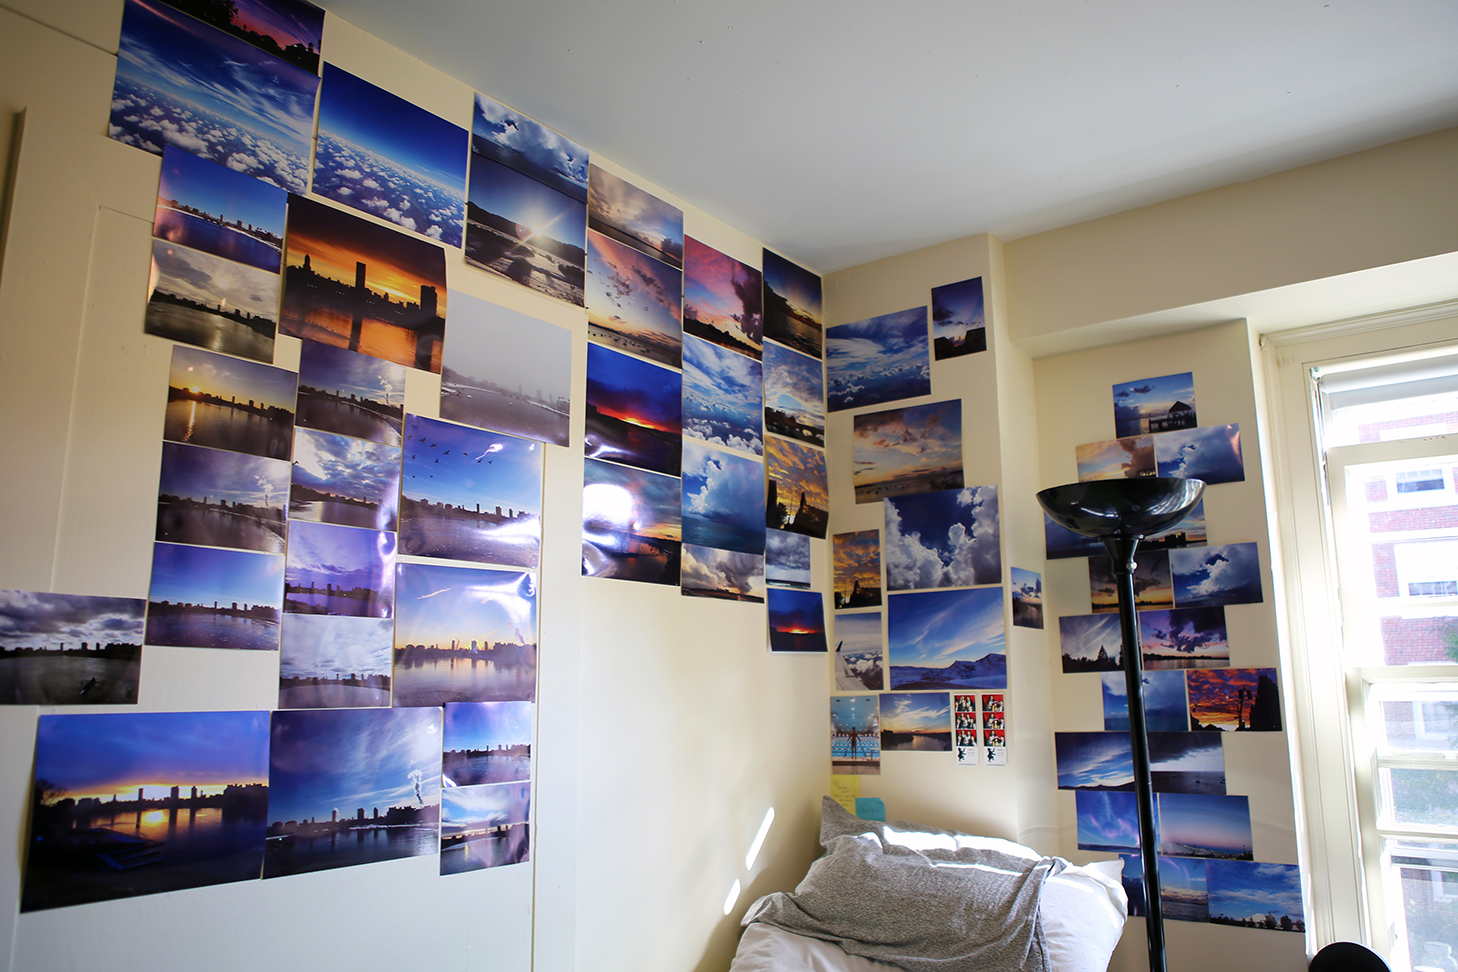 Bailar's wall is full of pictures of colorful skies and sparkling water.